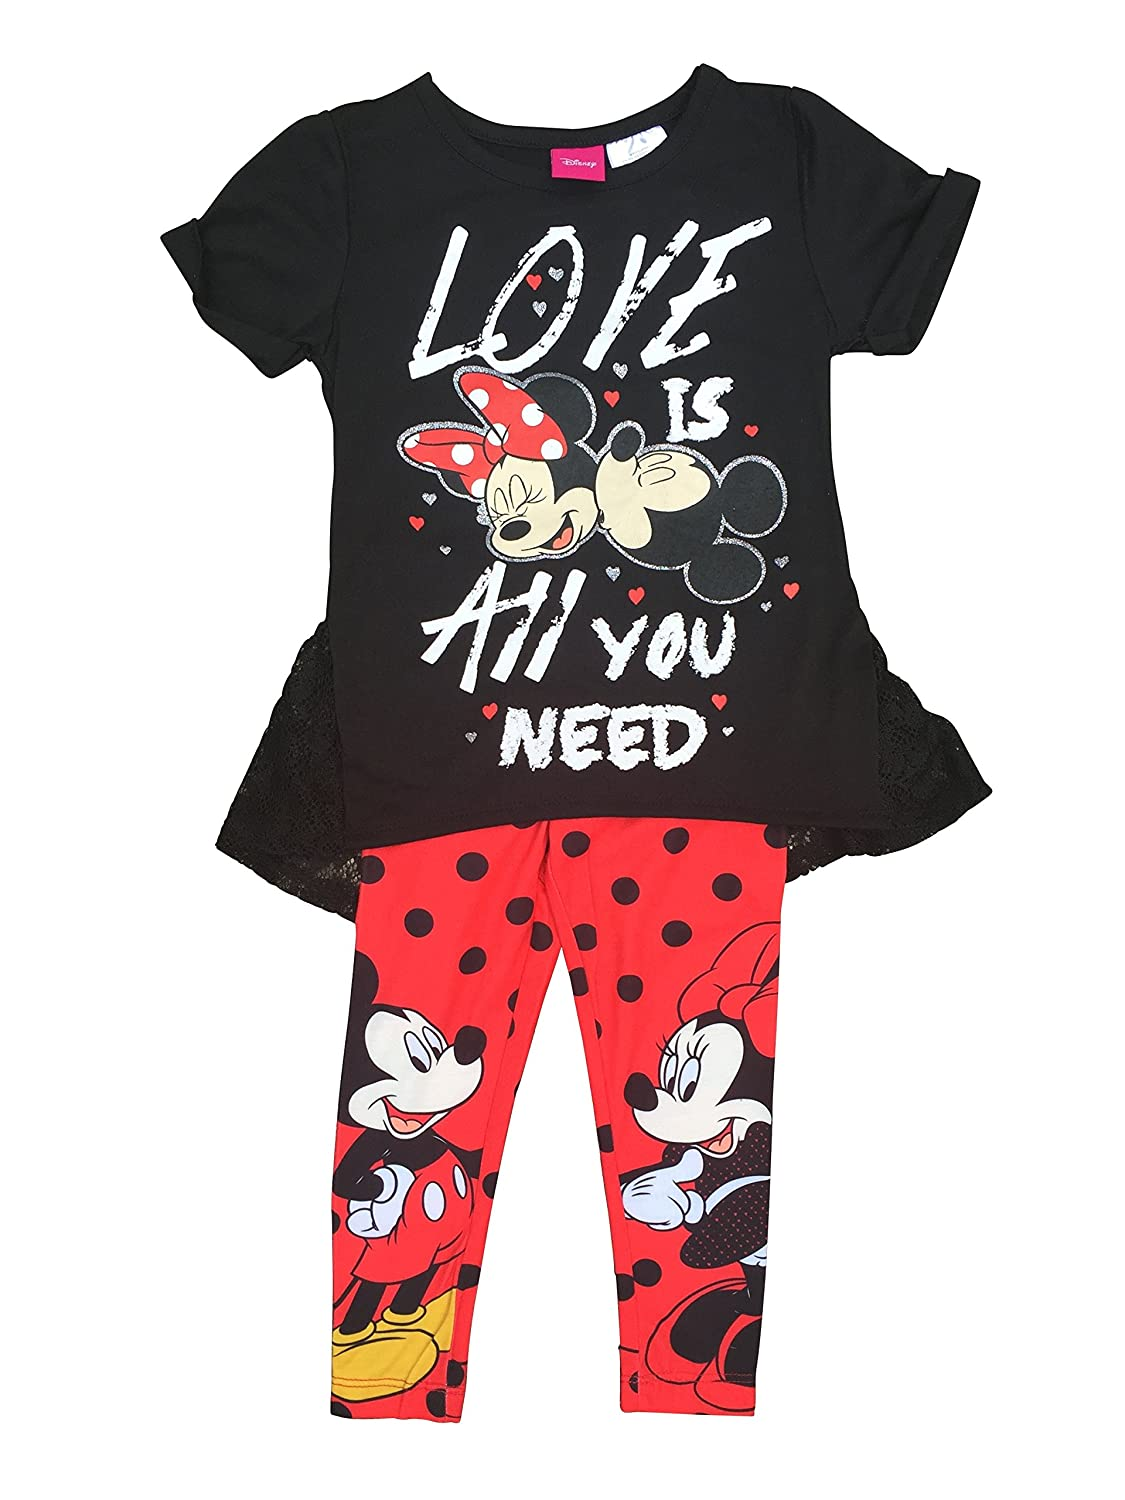 Girls Mickey /& Minnie Mouse All You Need is Love Tunic /& Leggings Set Size 6X